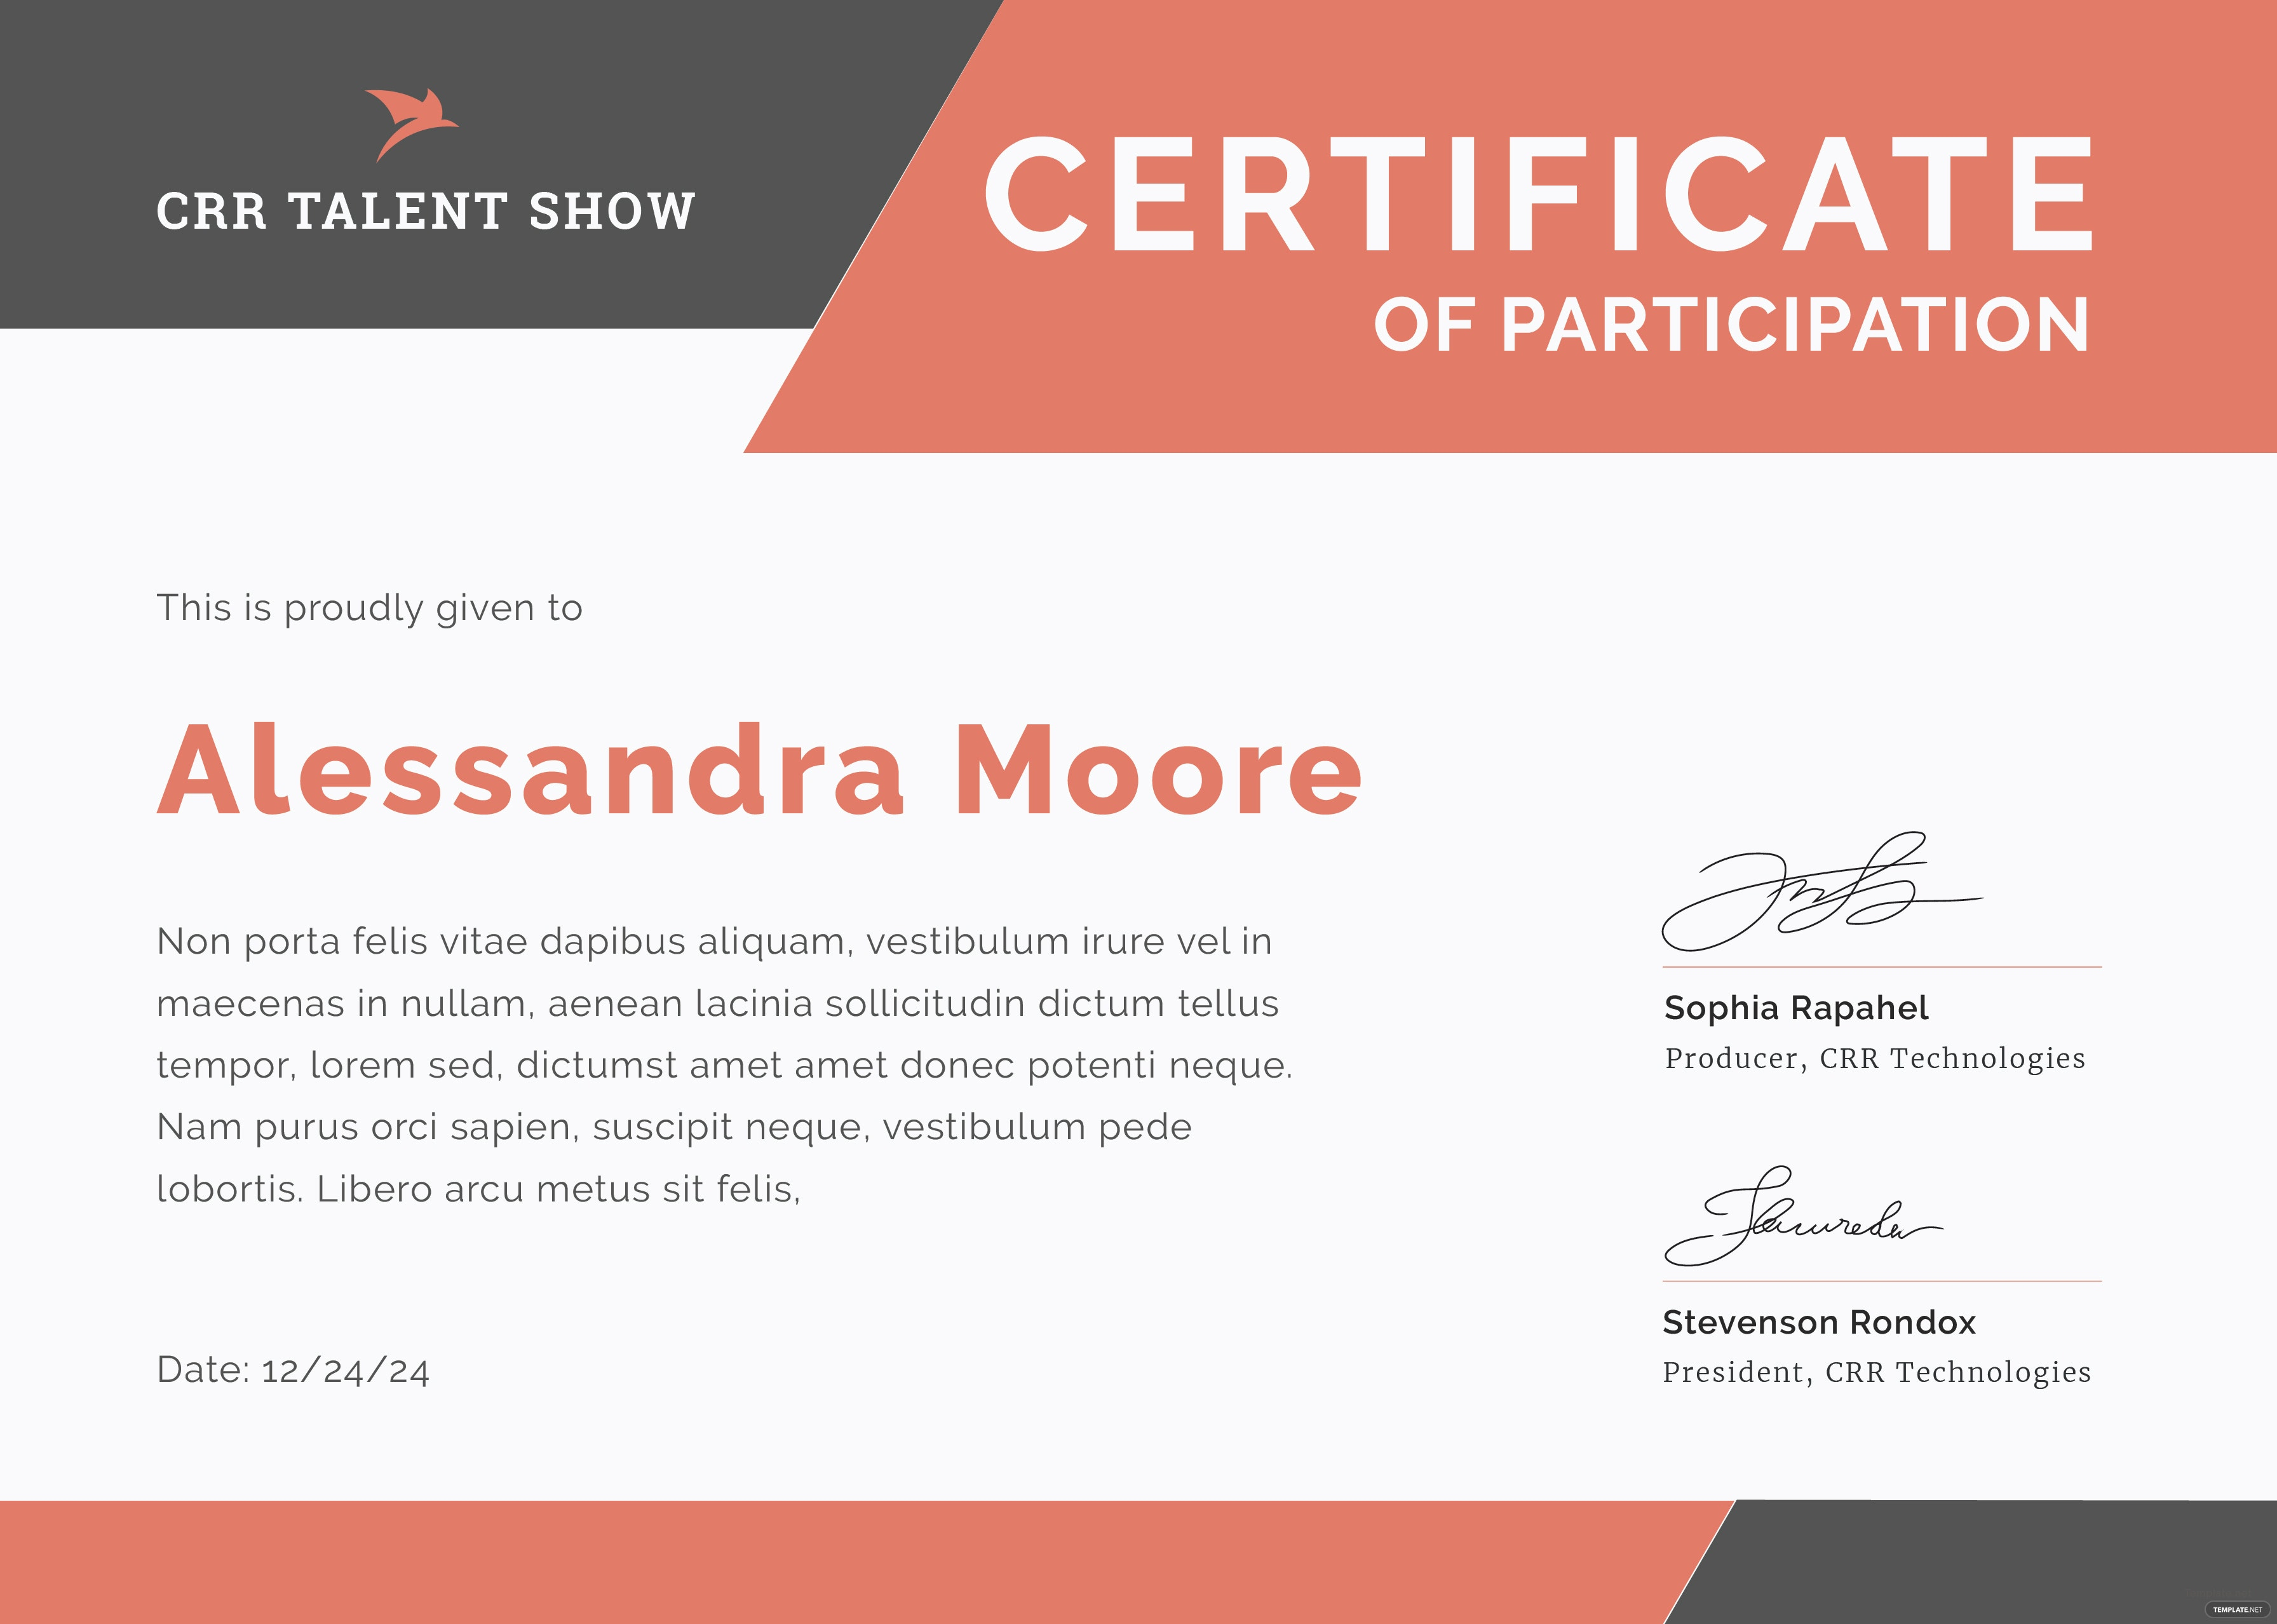 talent show participation certificate template in adobe